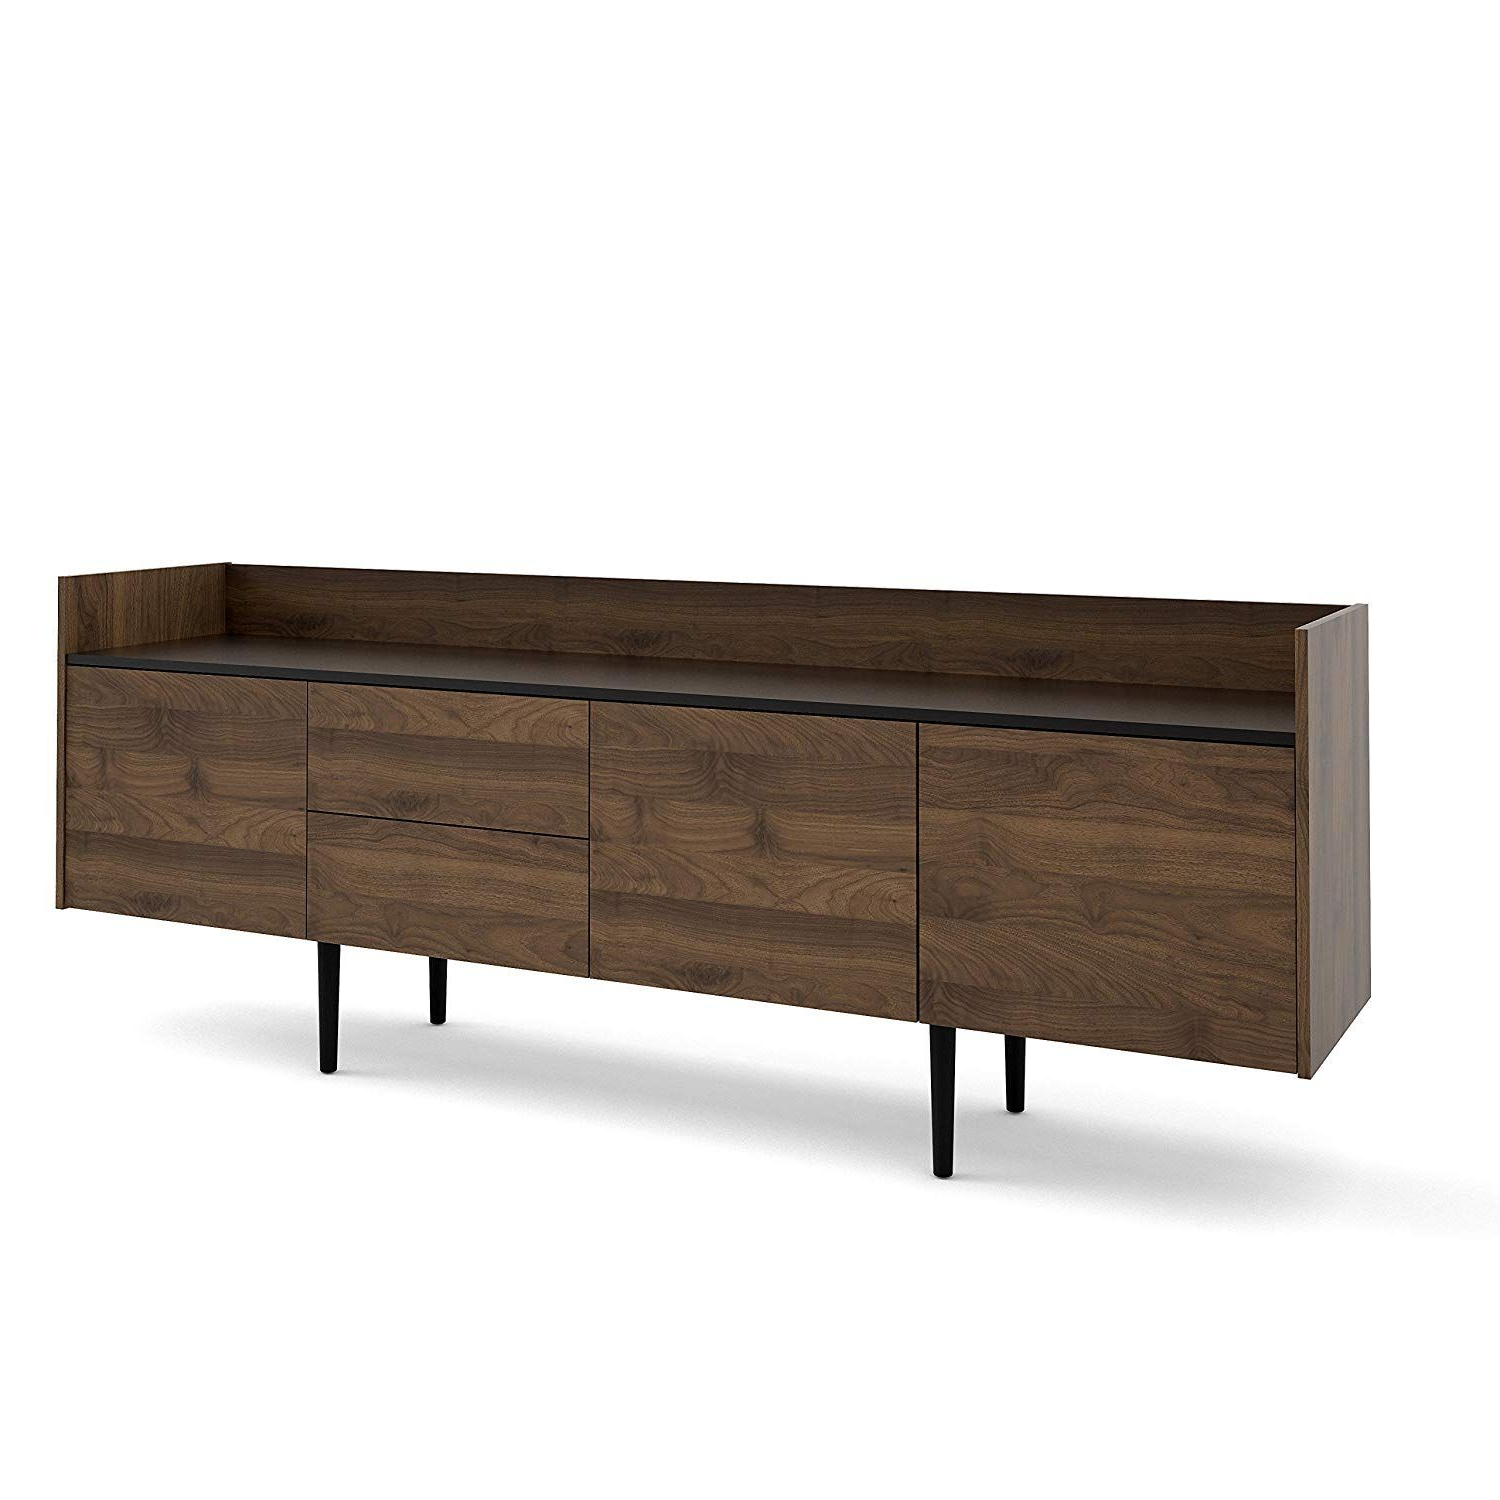 Sideboards By Foundry Select Regarding 2020 Amazon – Tvilum 70900Dj86 Unit 2 Drawer 3 Door Sideboard (View 15 of 20)